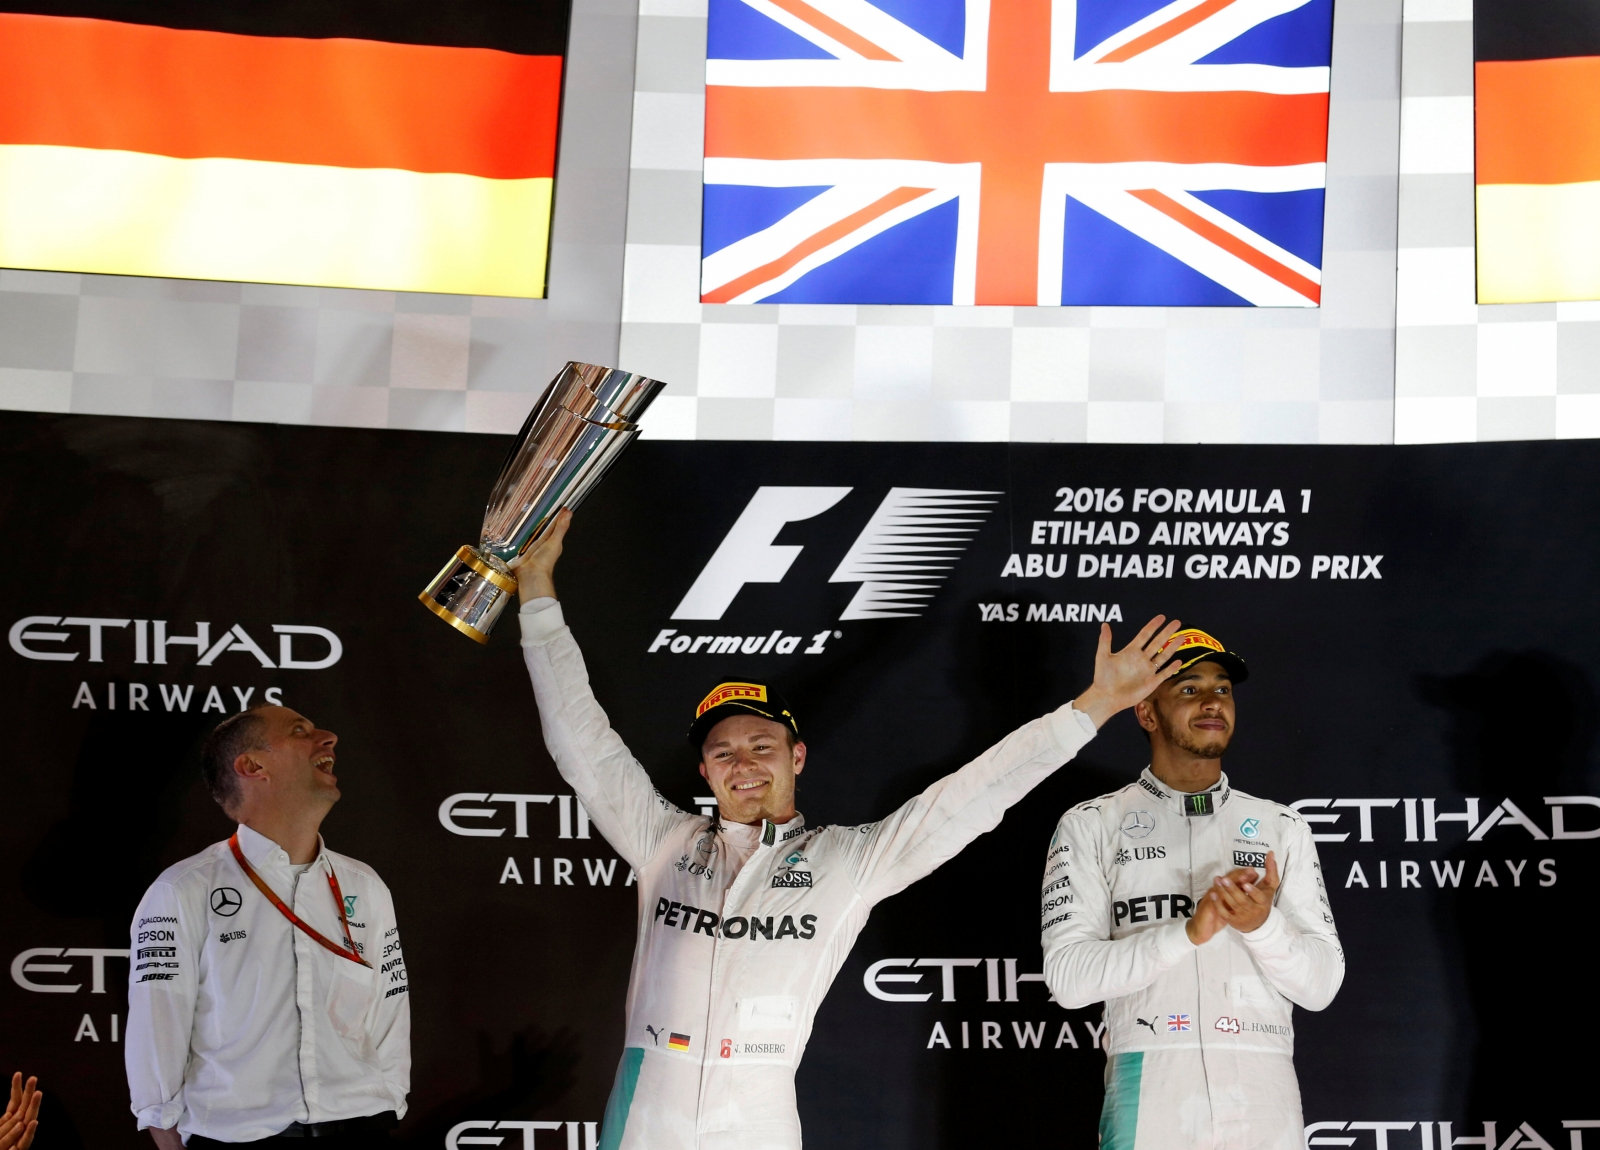 Mercedes' Formula One driver Nico Rosberg of Germany celebrates winning second place in the Abu Dhabi Grand Prix